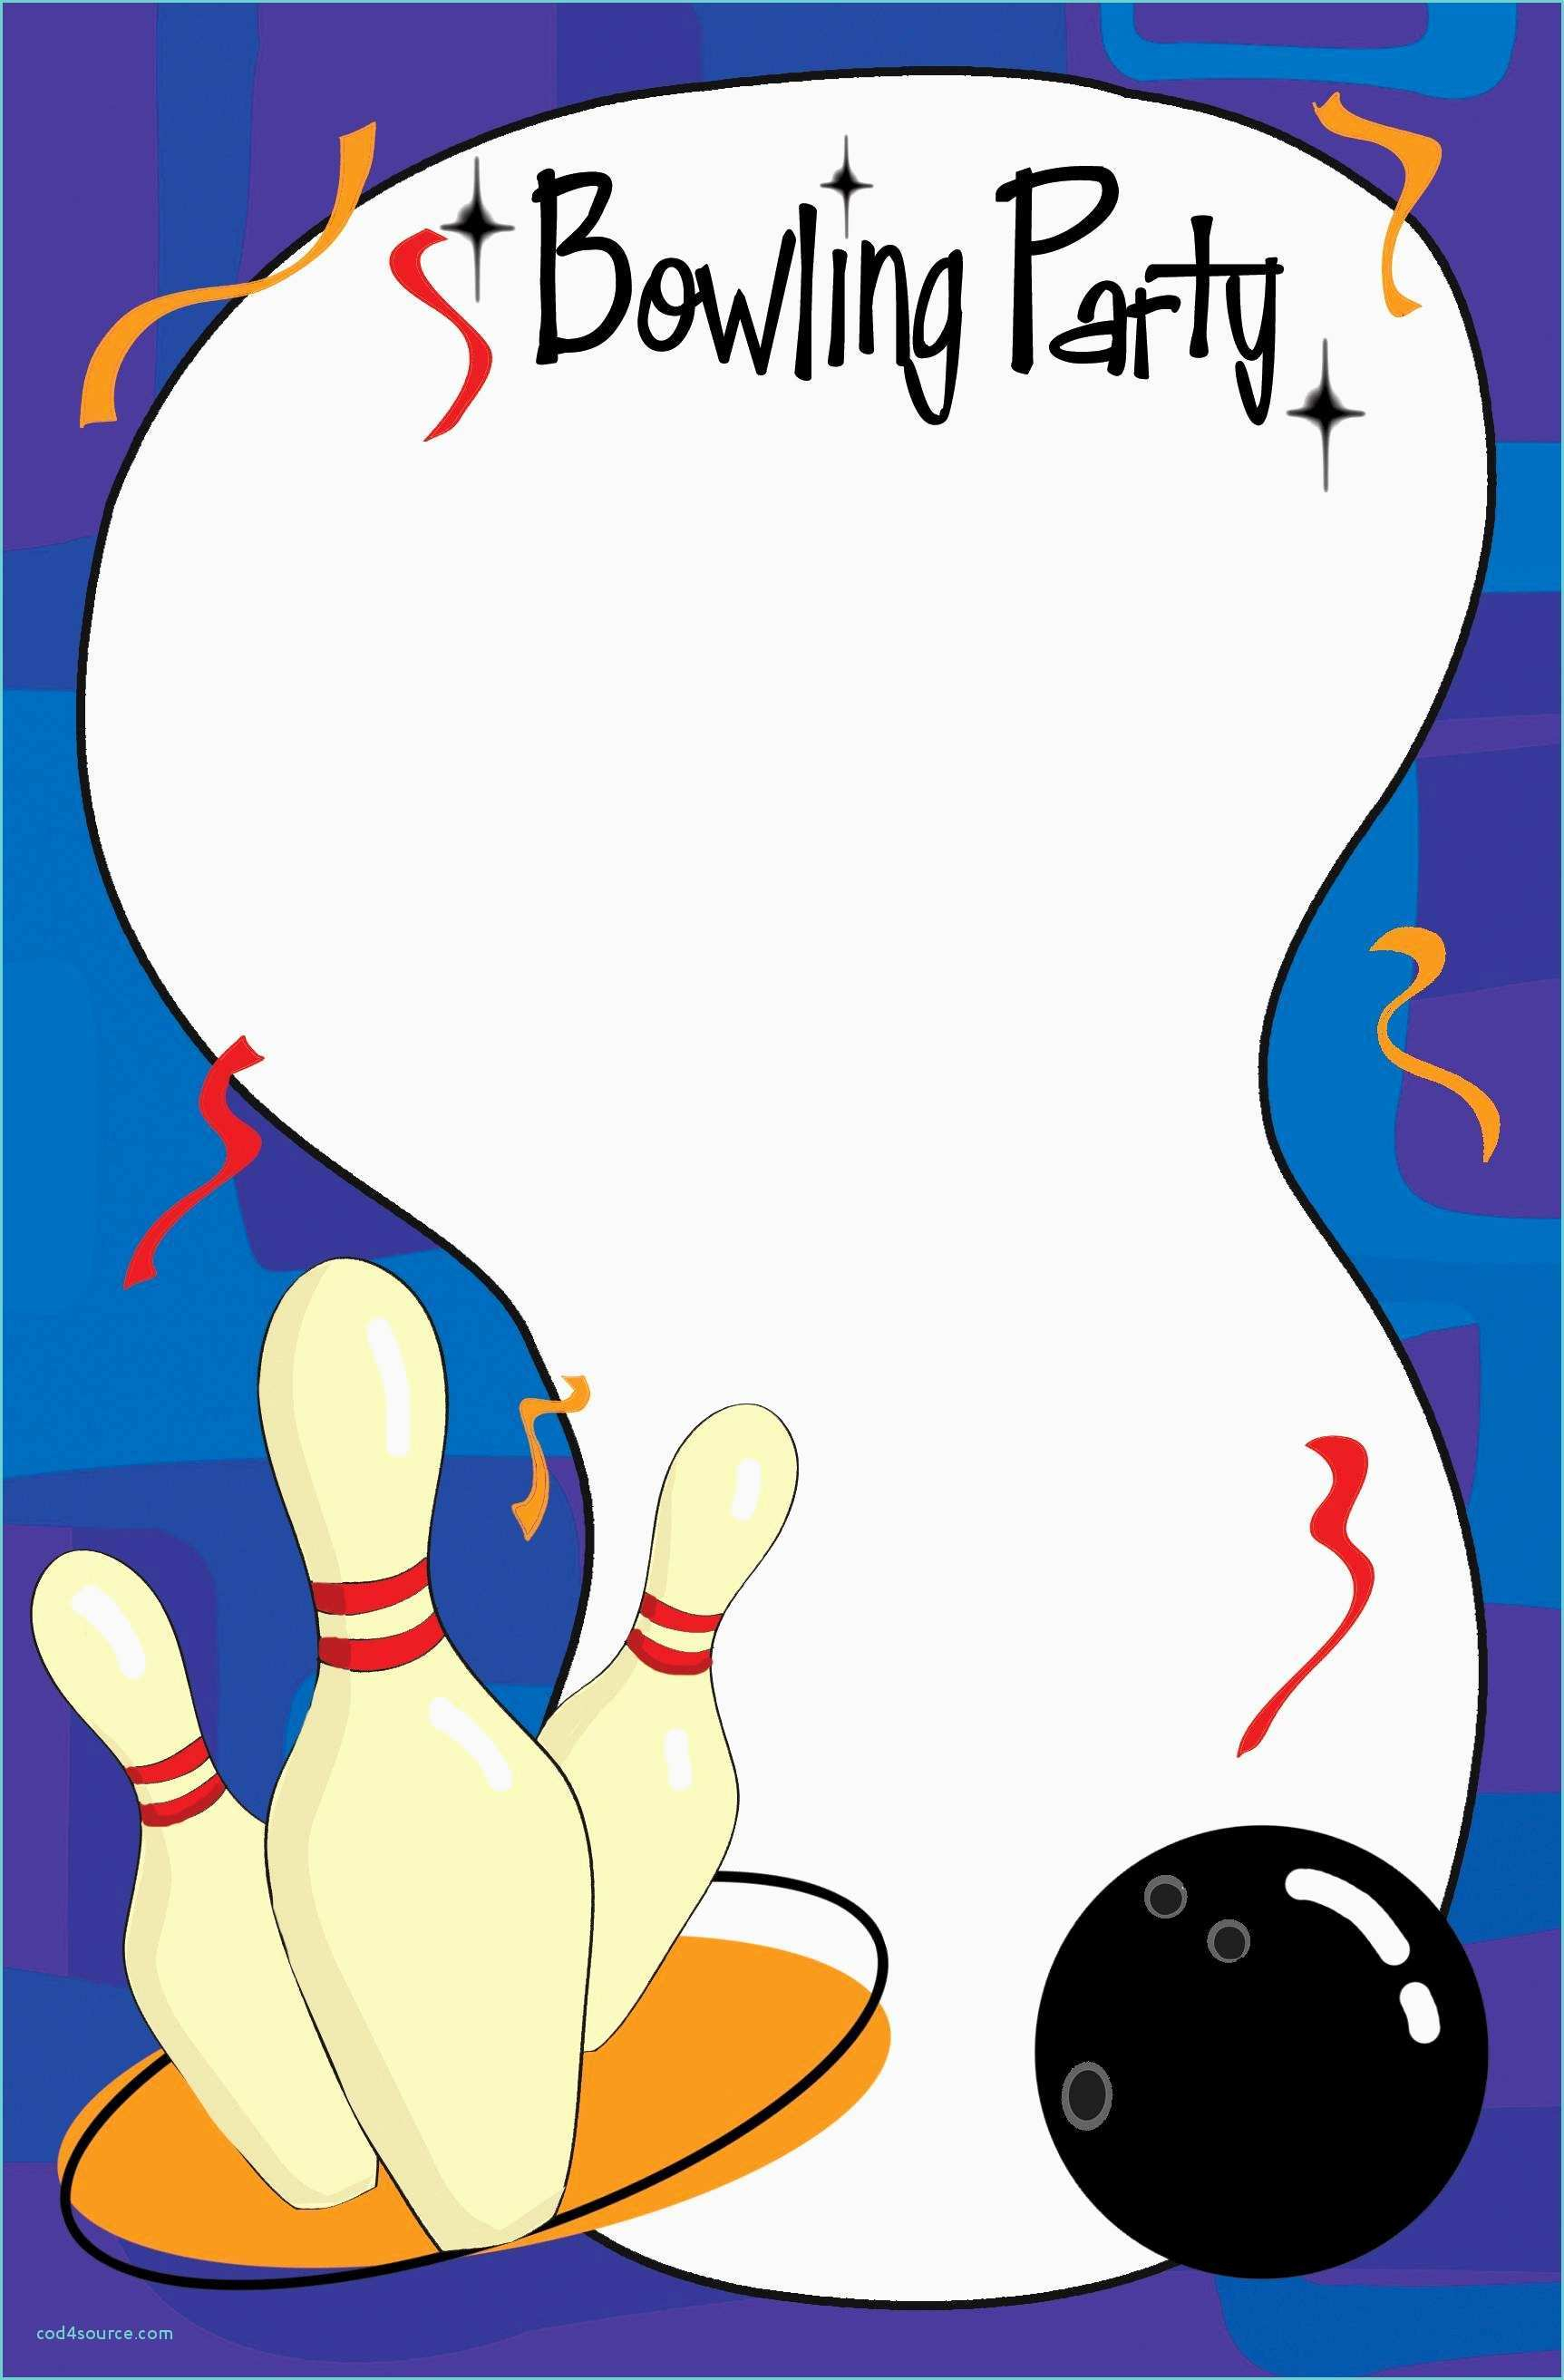 Free Bowling Party Invitation Template Word - Free Printable Bowling Invitation Templates